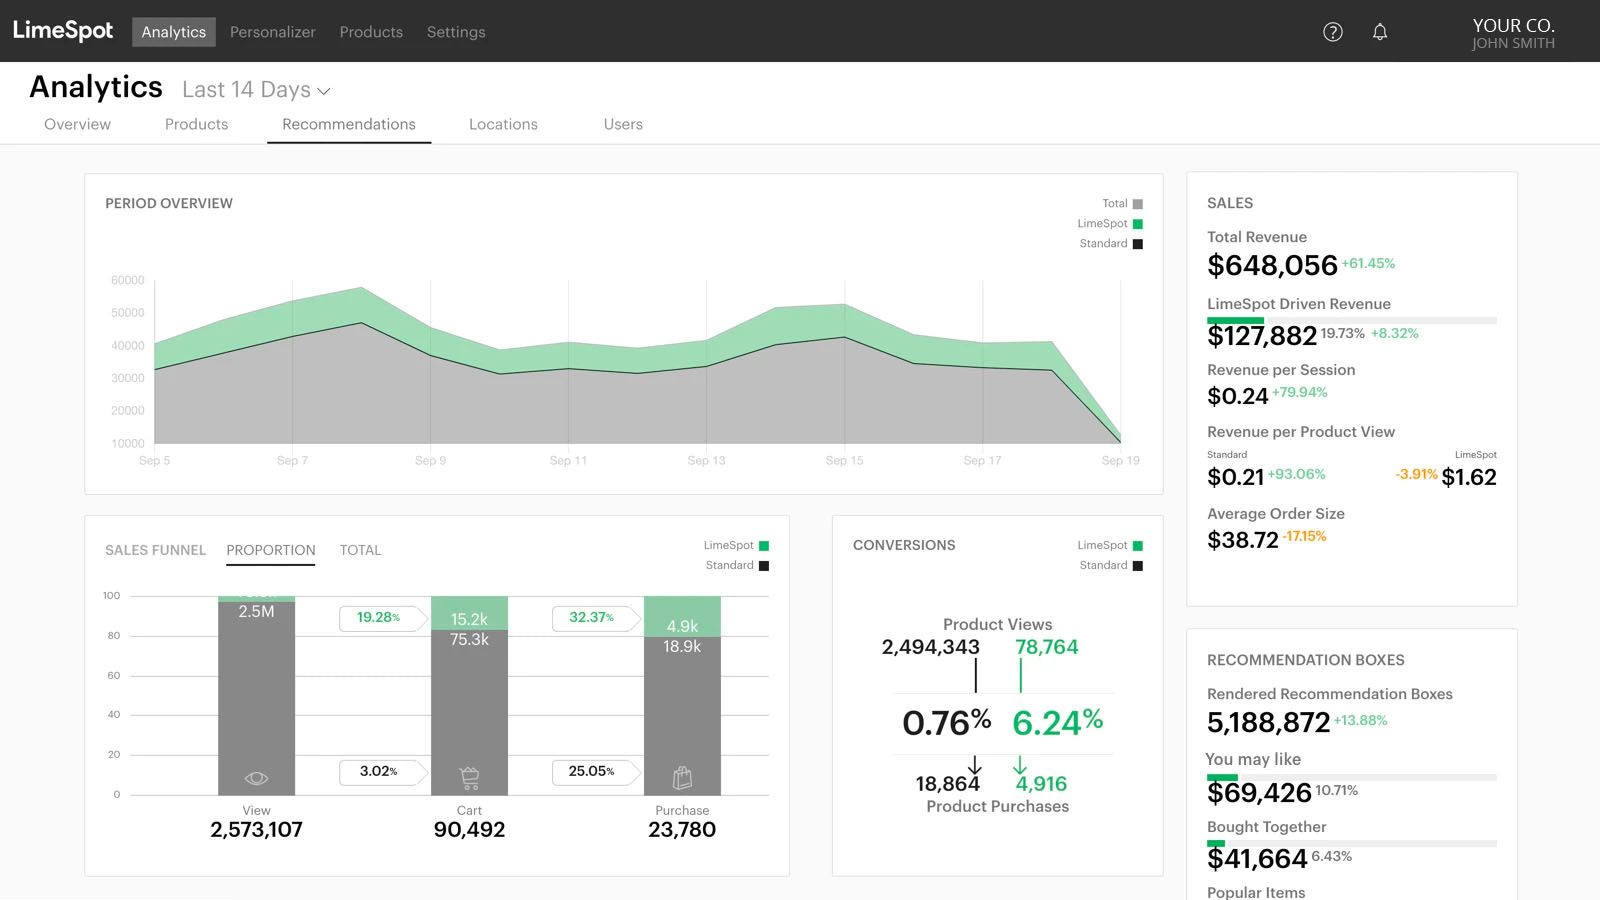 Product Recommendation Analytics & Conversion Sales Performance